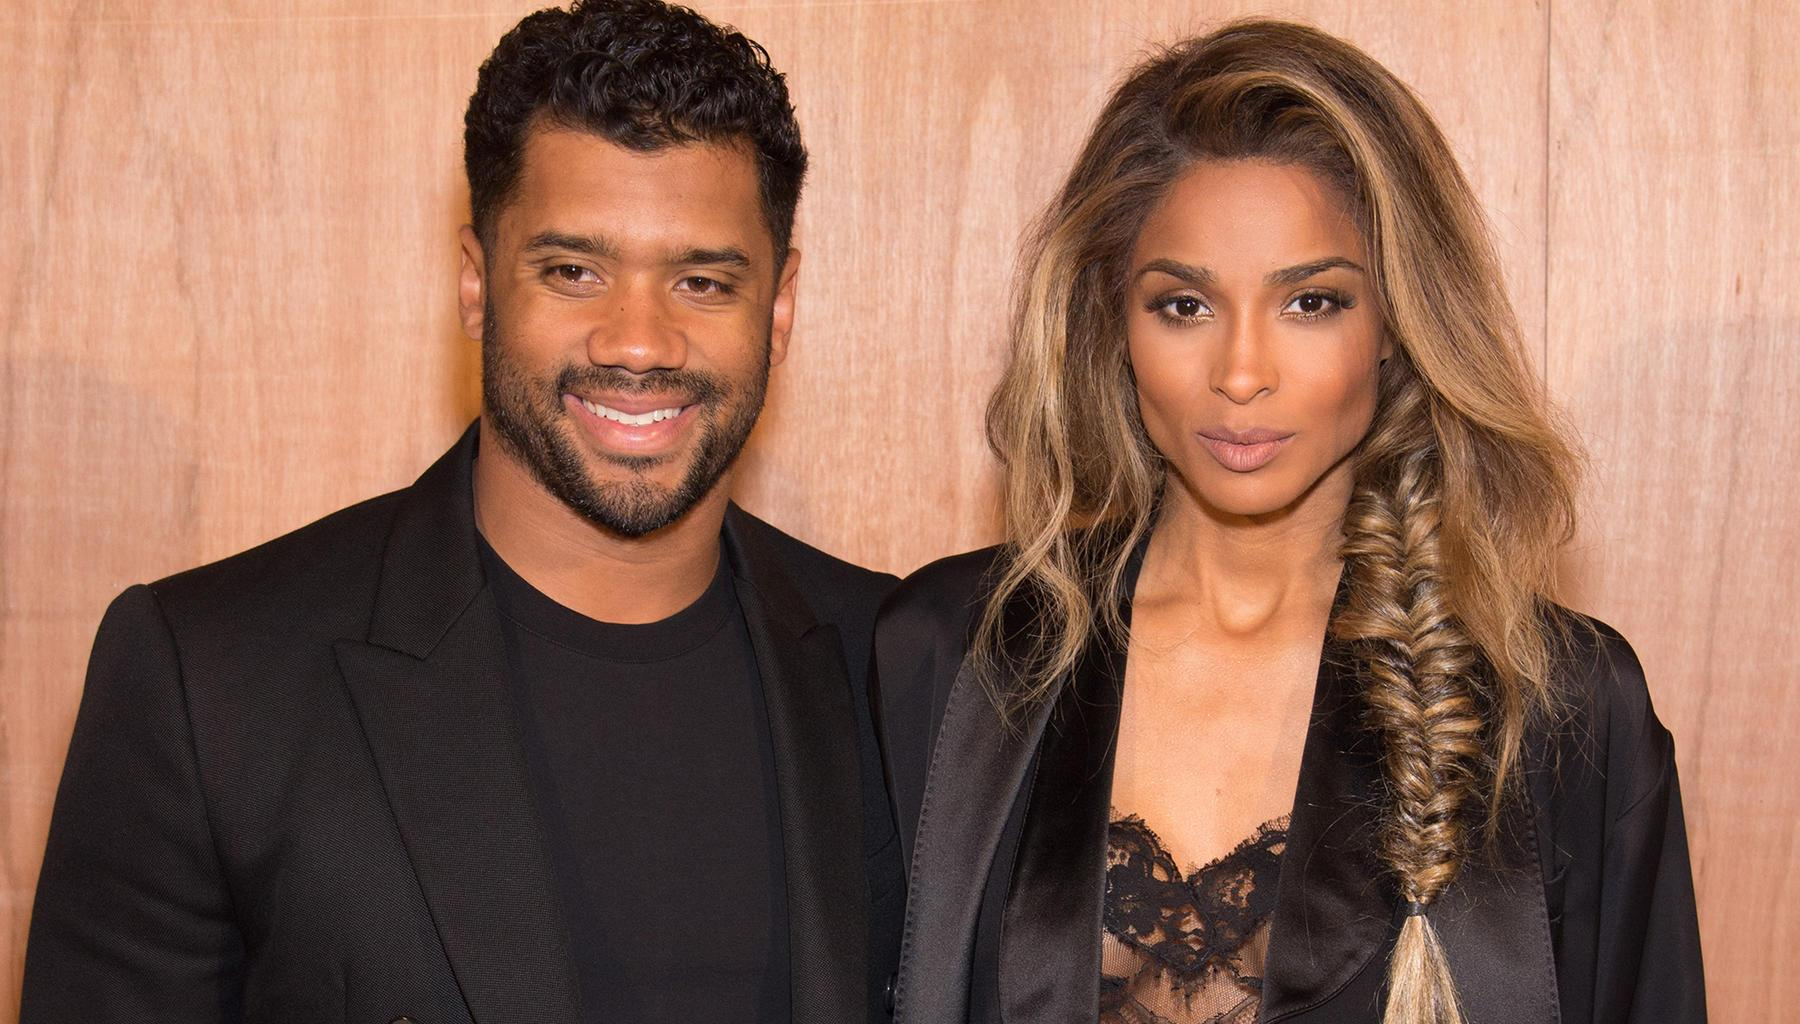 Russell Wilson And Ciara Reveal They Are Donating One Million Meals To The Local Food Bank